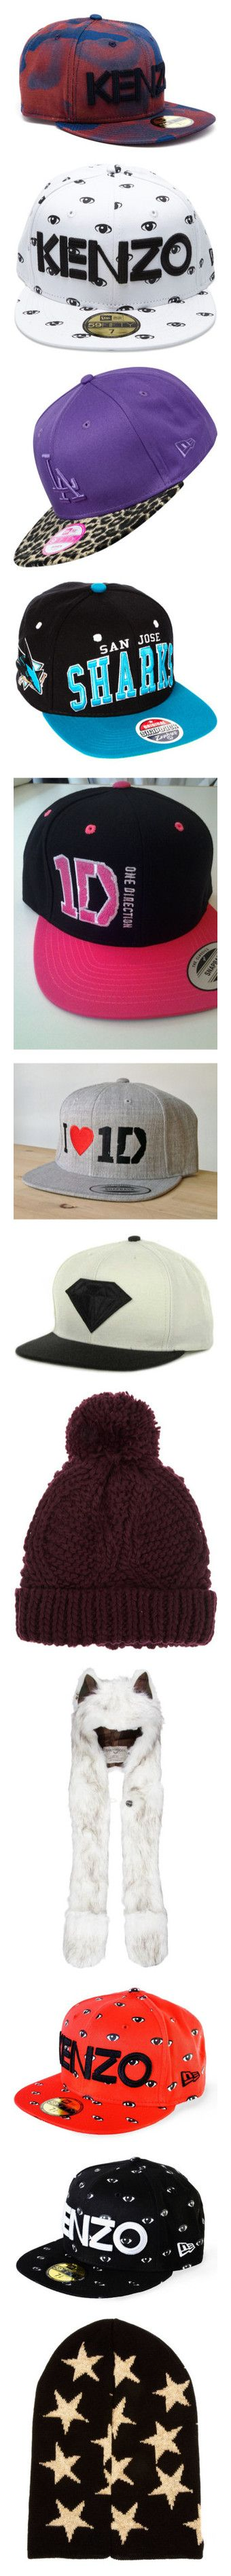 """hats ,caps and beanies *.*"" by adriana-zayn ❤ liked on Polyvore featuring accessories, hats, camo hats, camo cap, camouflage cap, kenzo cap, kenzo hat, sapka, white and print hats"